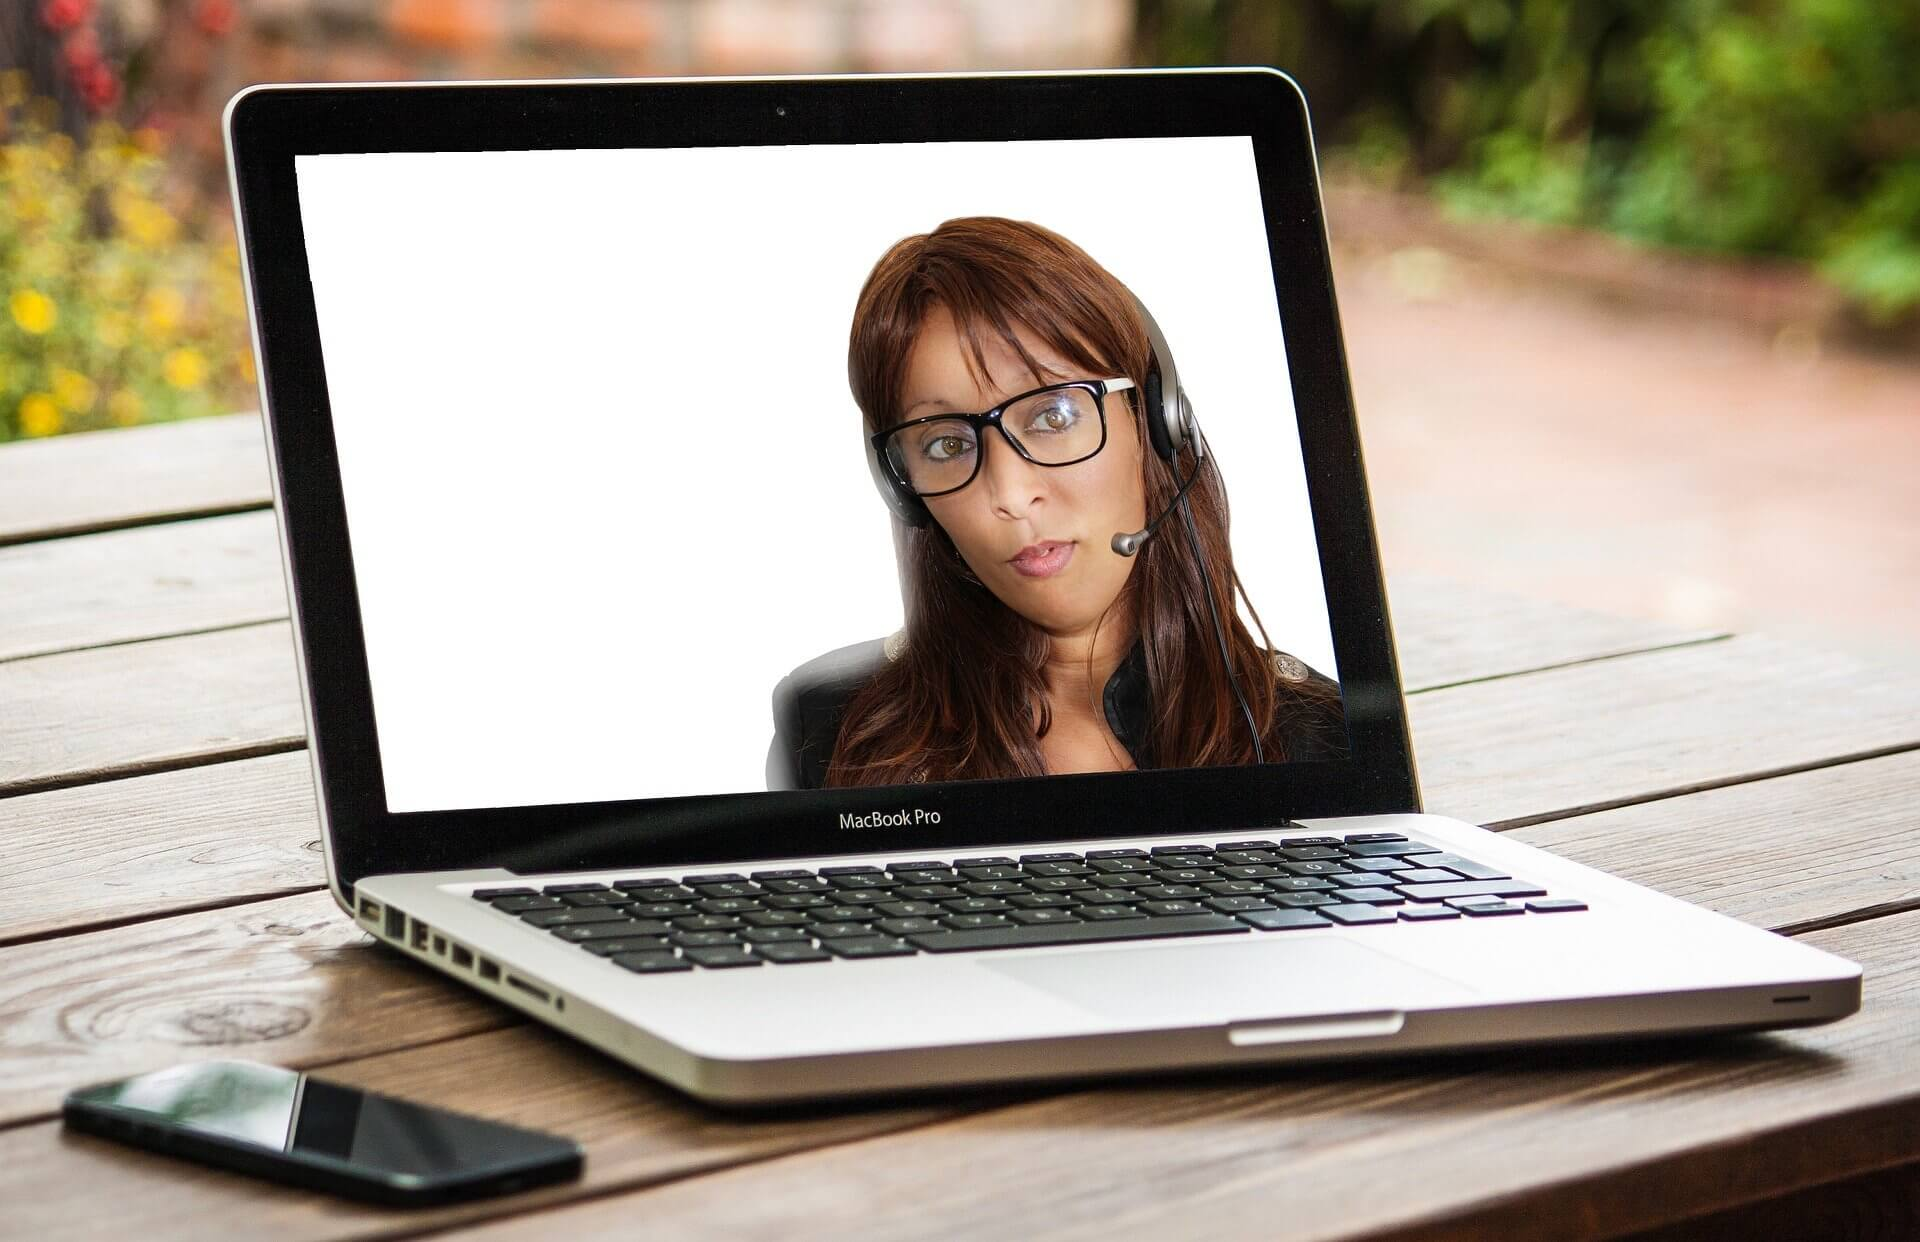 11 Quick Tips to Improve Online Meetings & Videoconferencing